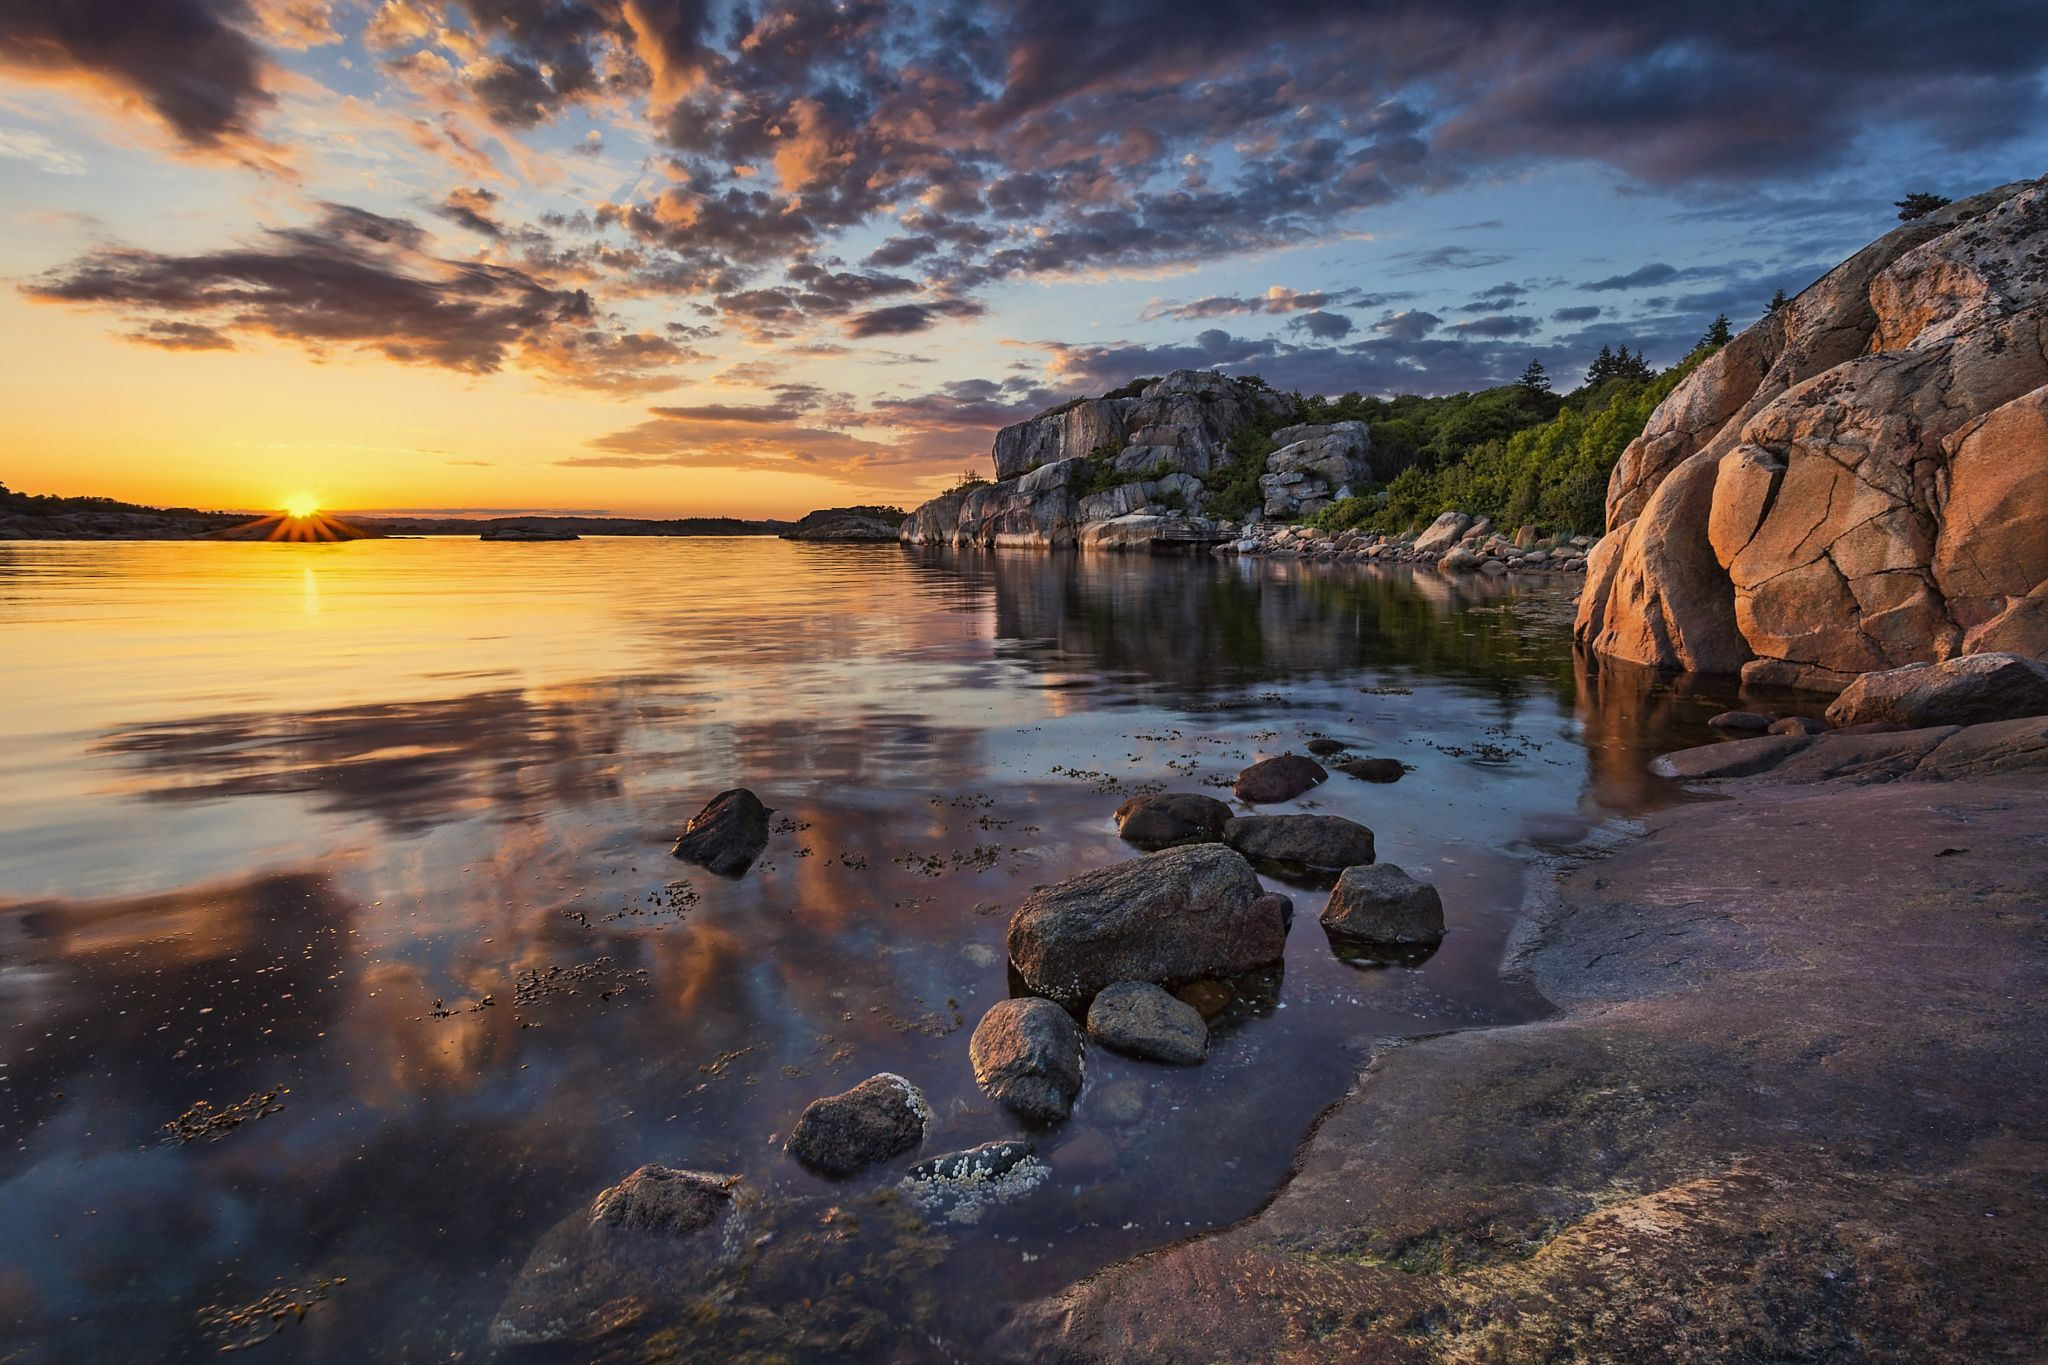 Ølbergholmen by ivar hole on 500px